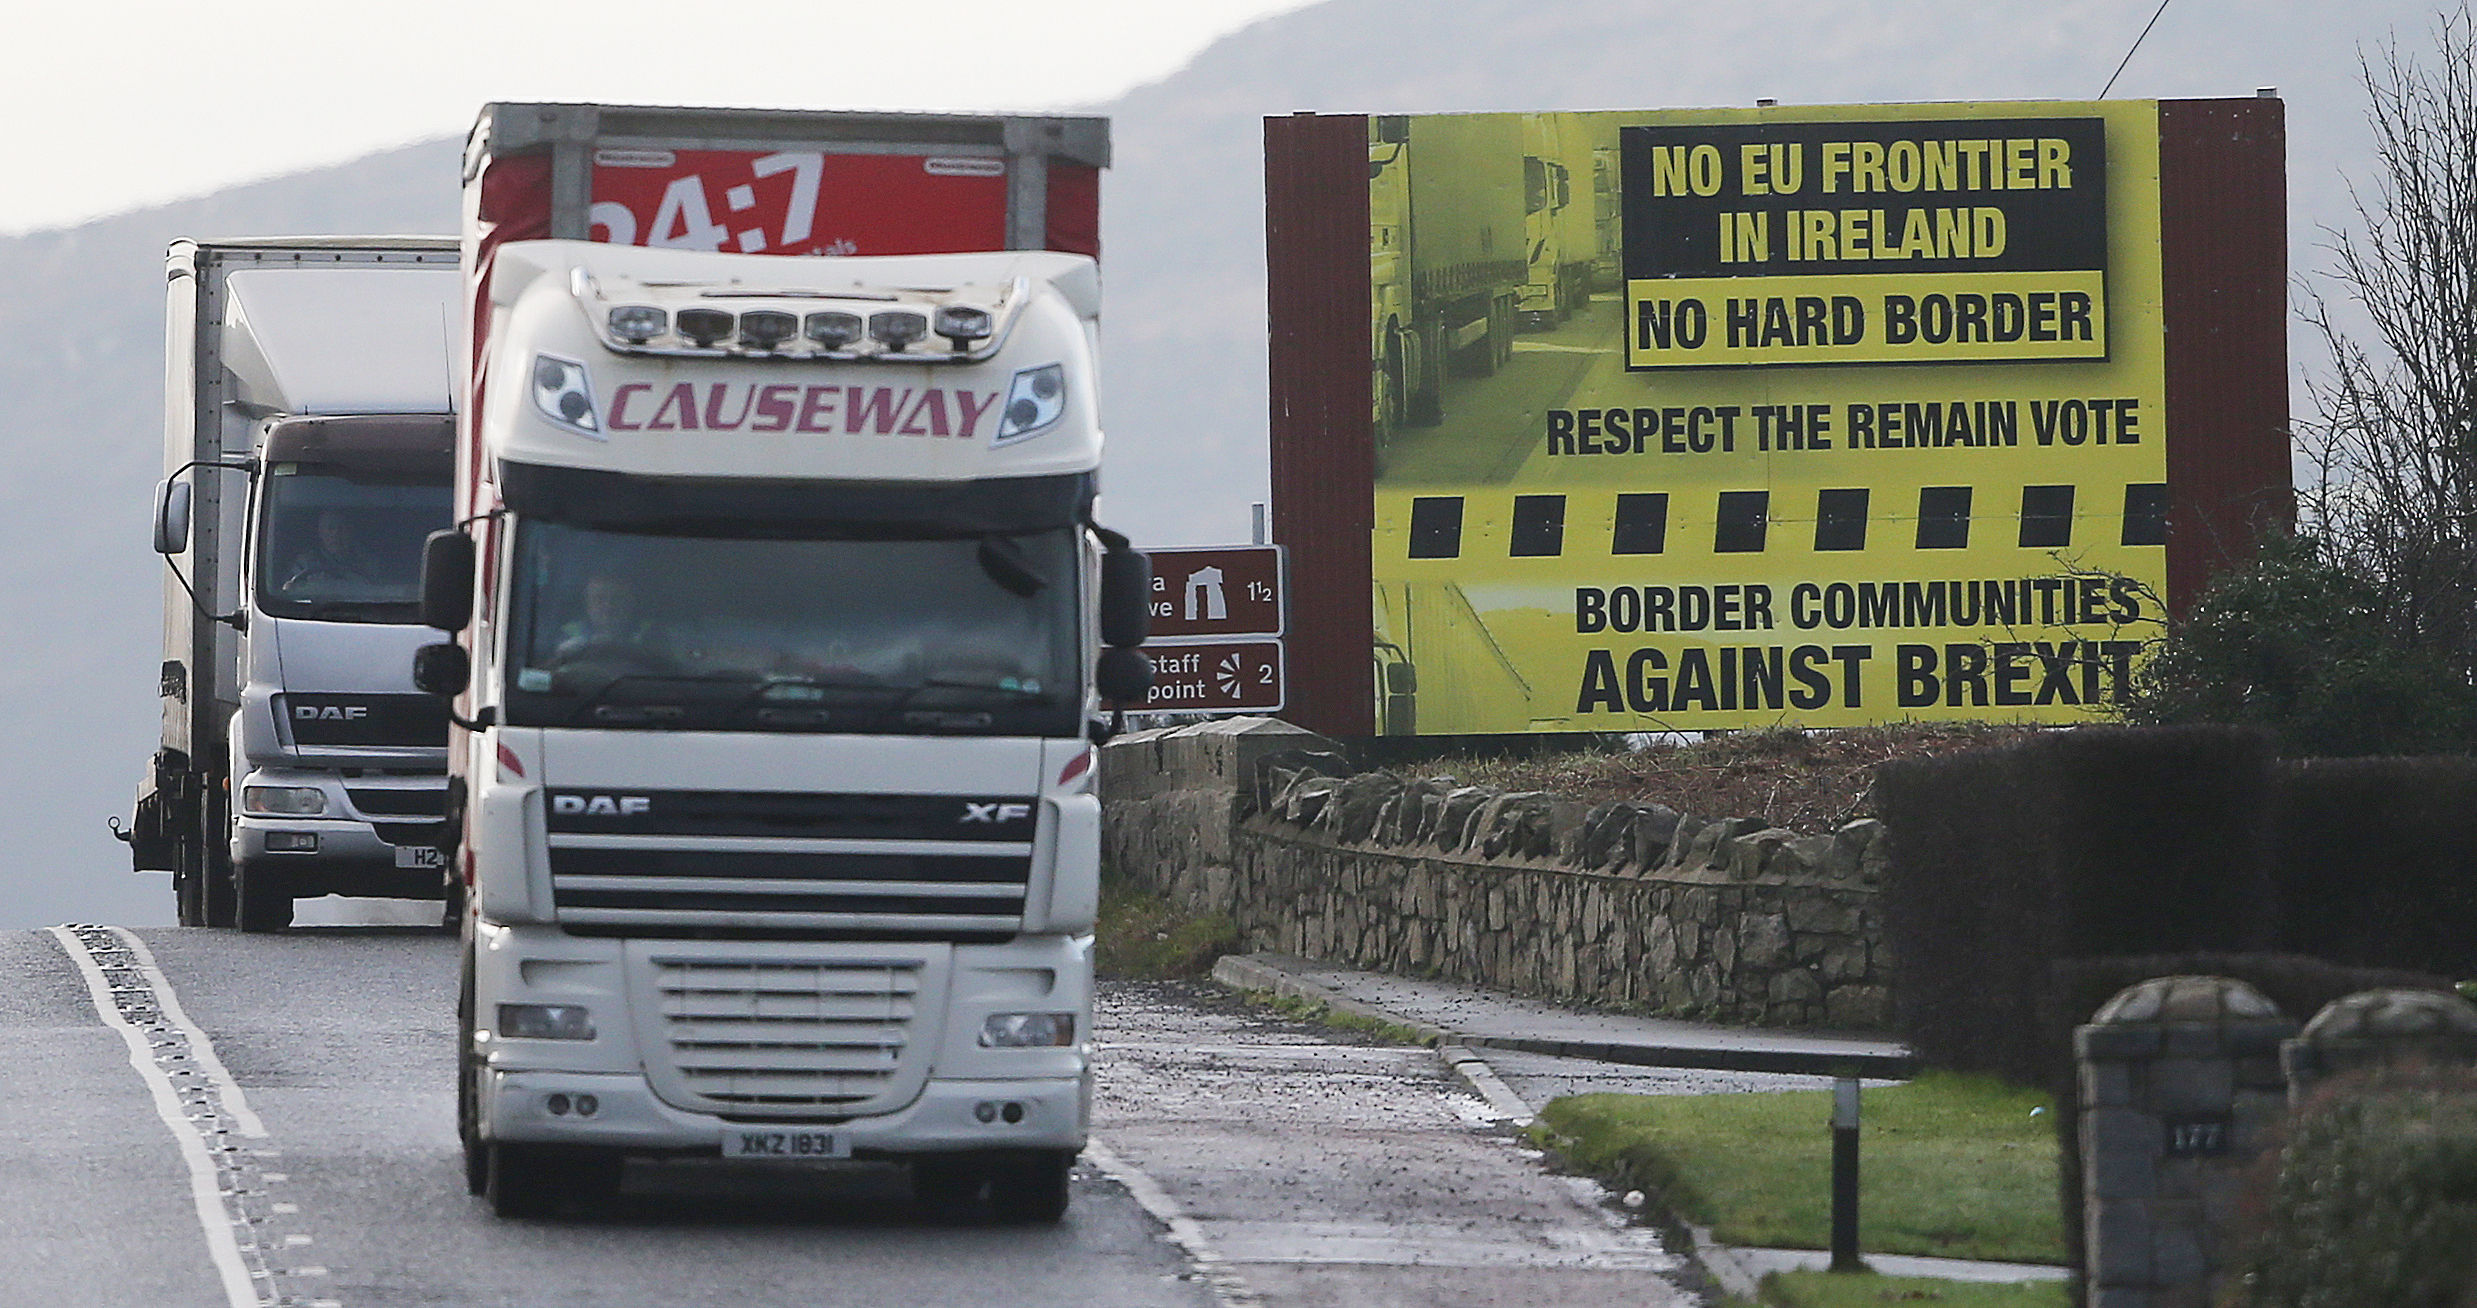 A truck passes a Brexit billboard in Jonesborough, Co. Armagh, on the northern side of the border between Northern Ireland and the Republic of Ireland, (Niall Carson/PA Wire)